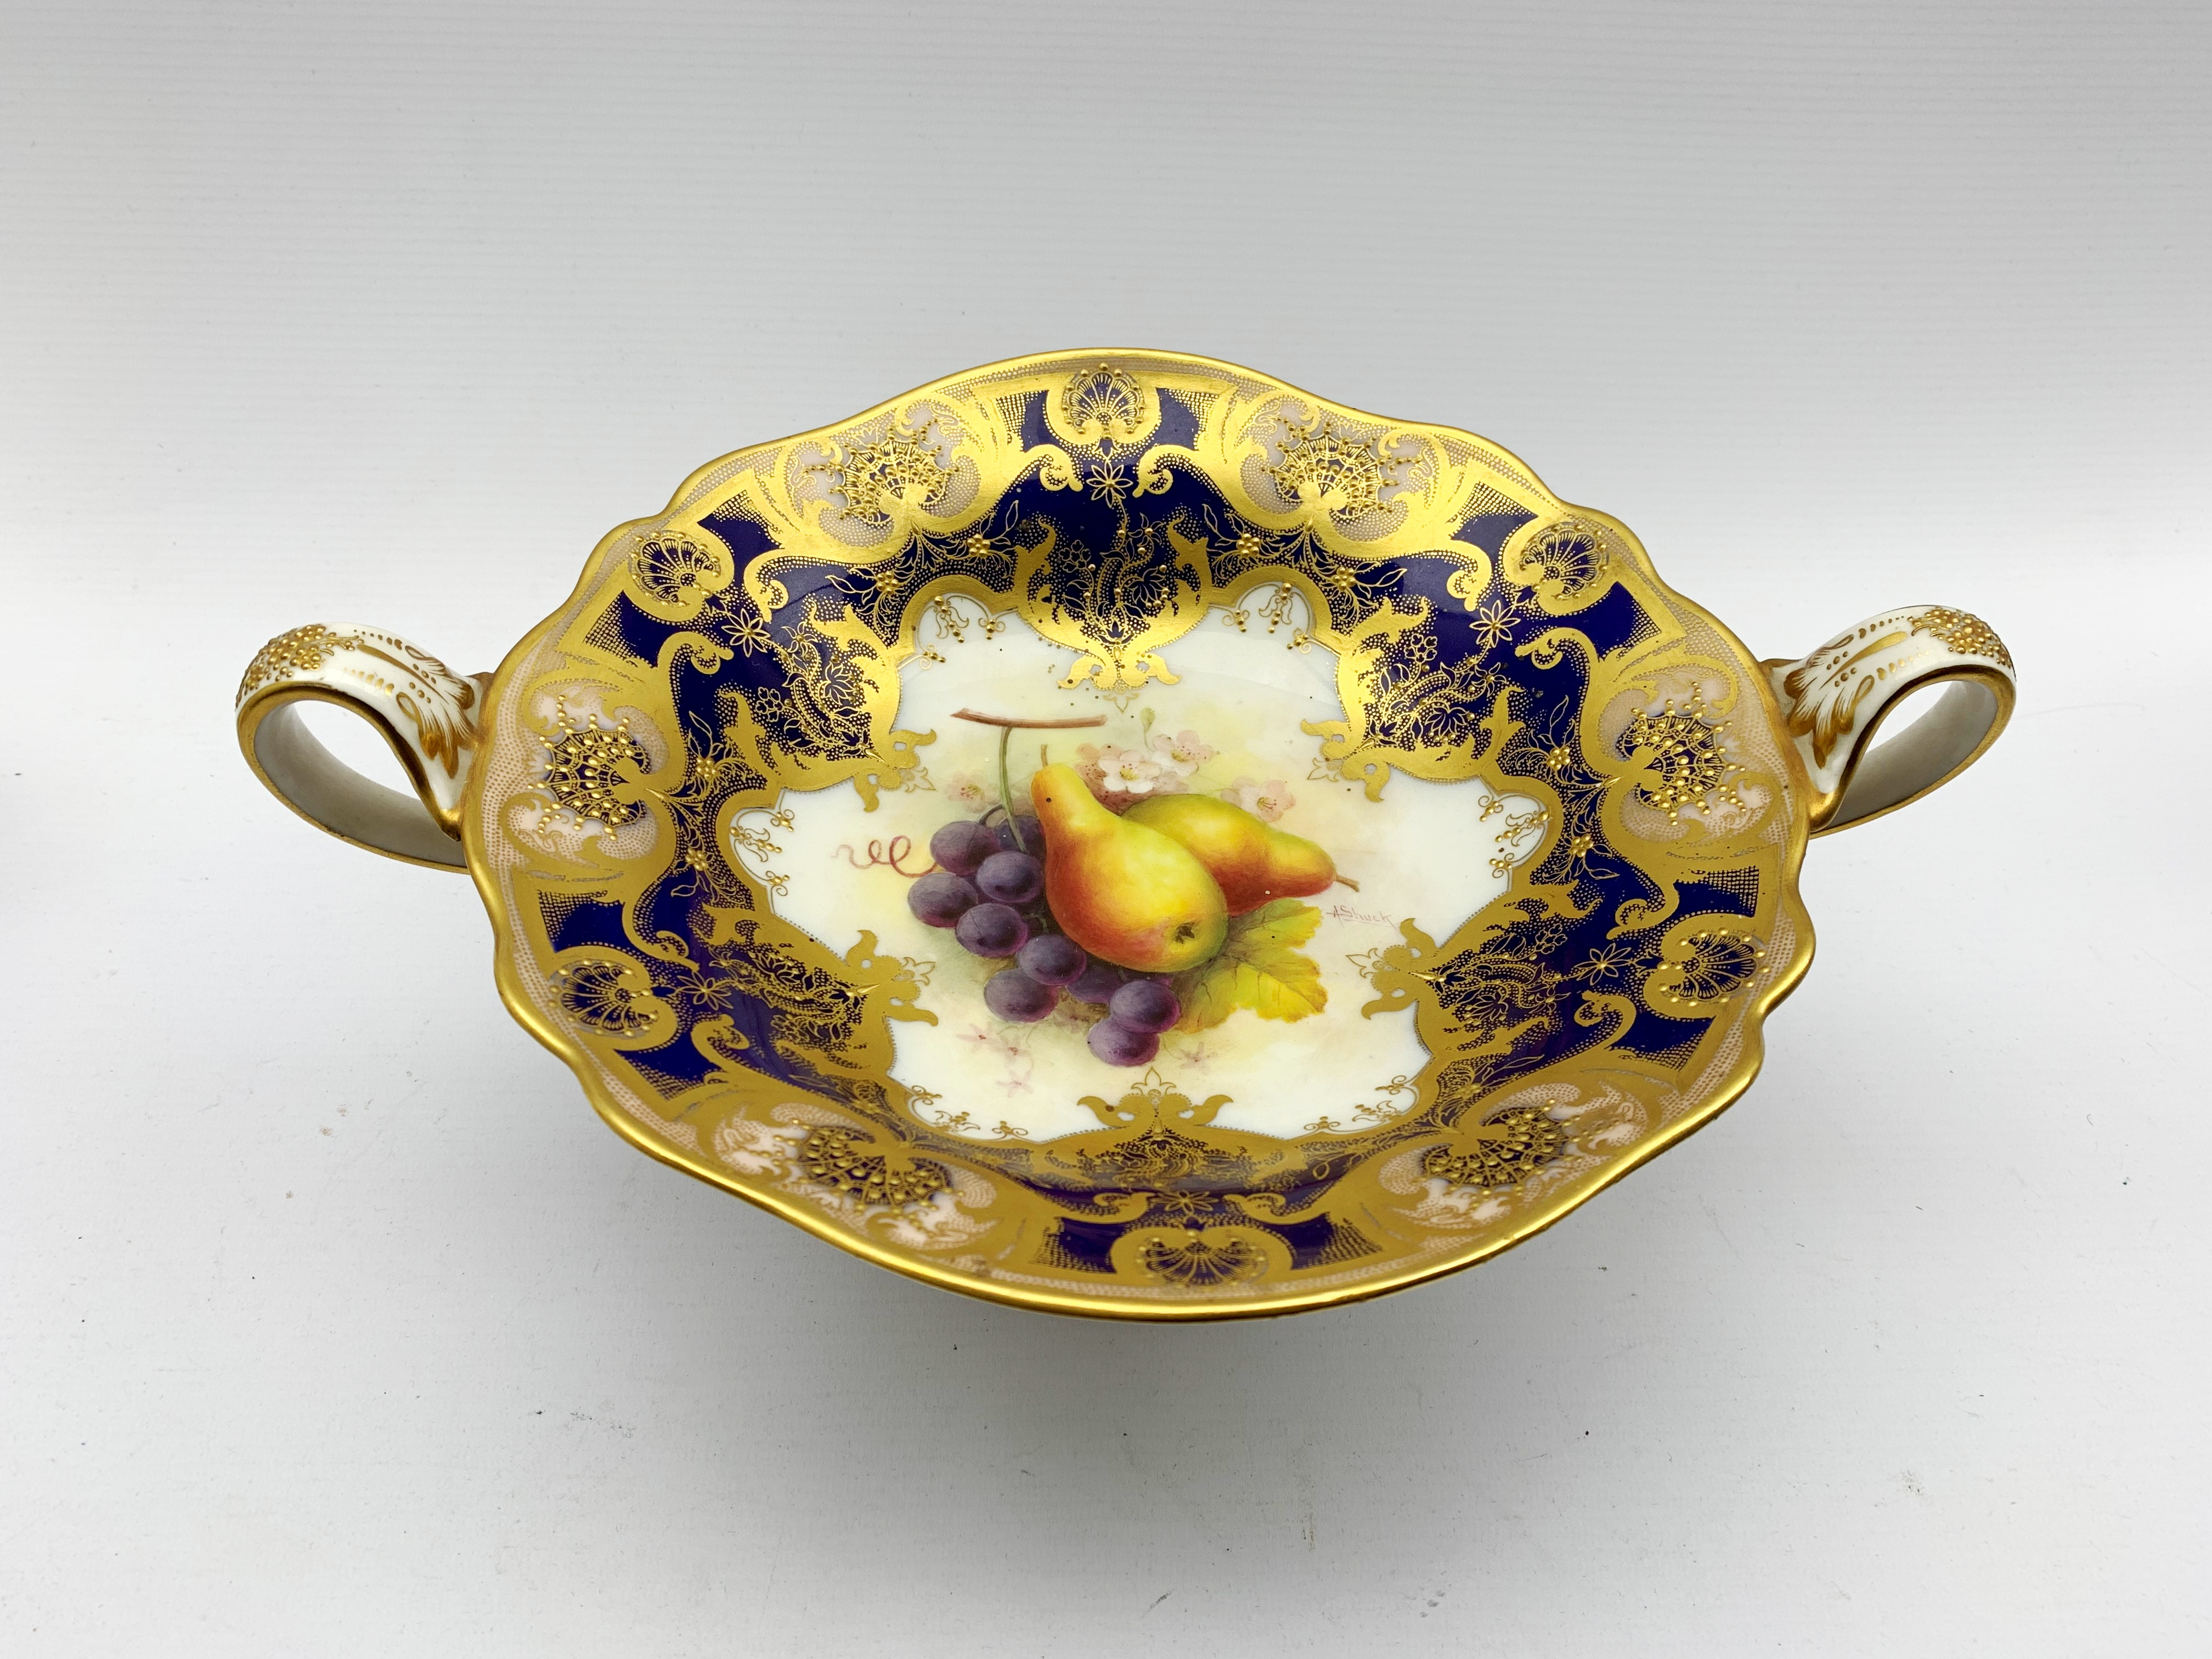 Royal Worcester porcelain twin-handled comport painted by Albert Shuck, signed, with grapes and pear - Image 6 of 7